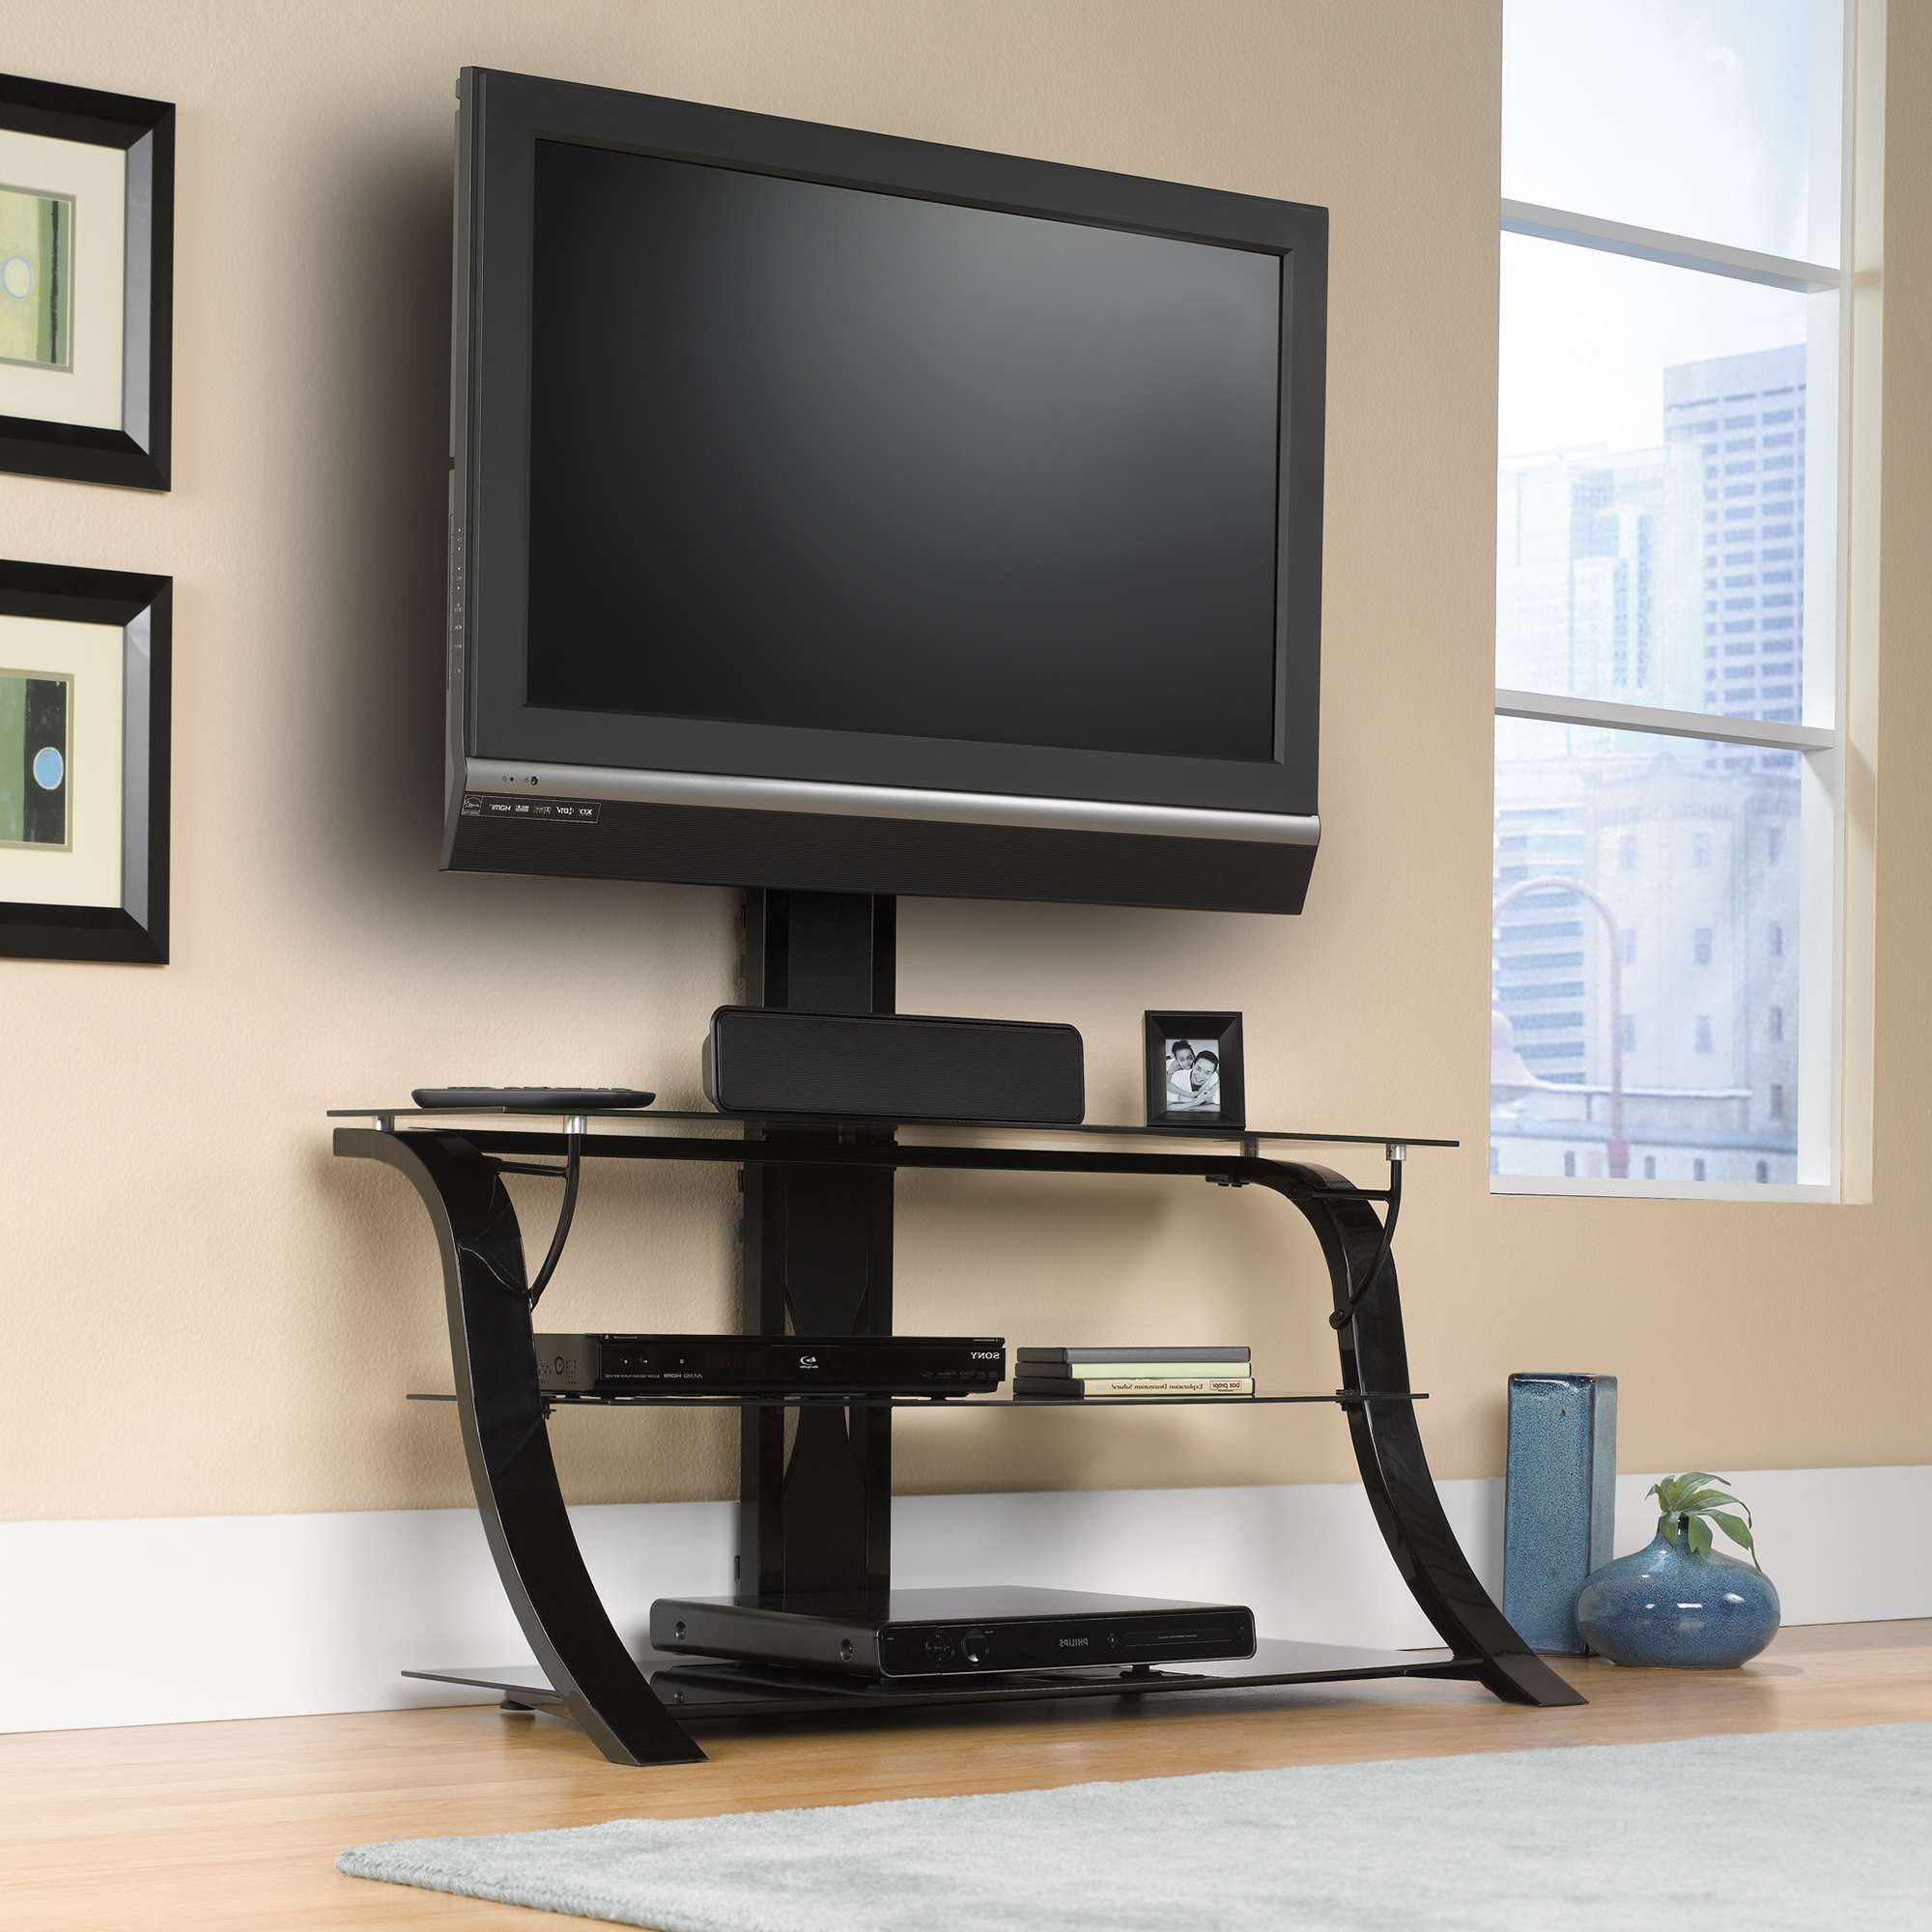 Tv Stand : Da1de92aaf0e 1 Marvelous Tv Stand With Pictures Design Pertaining To Cordoba Tv Stands (View 9 of 15)